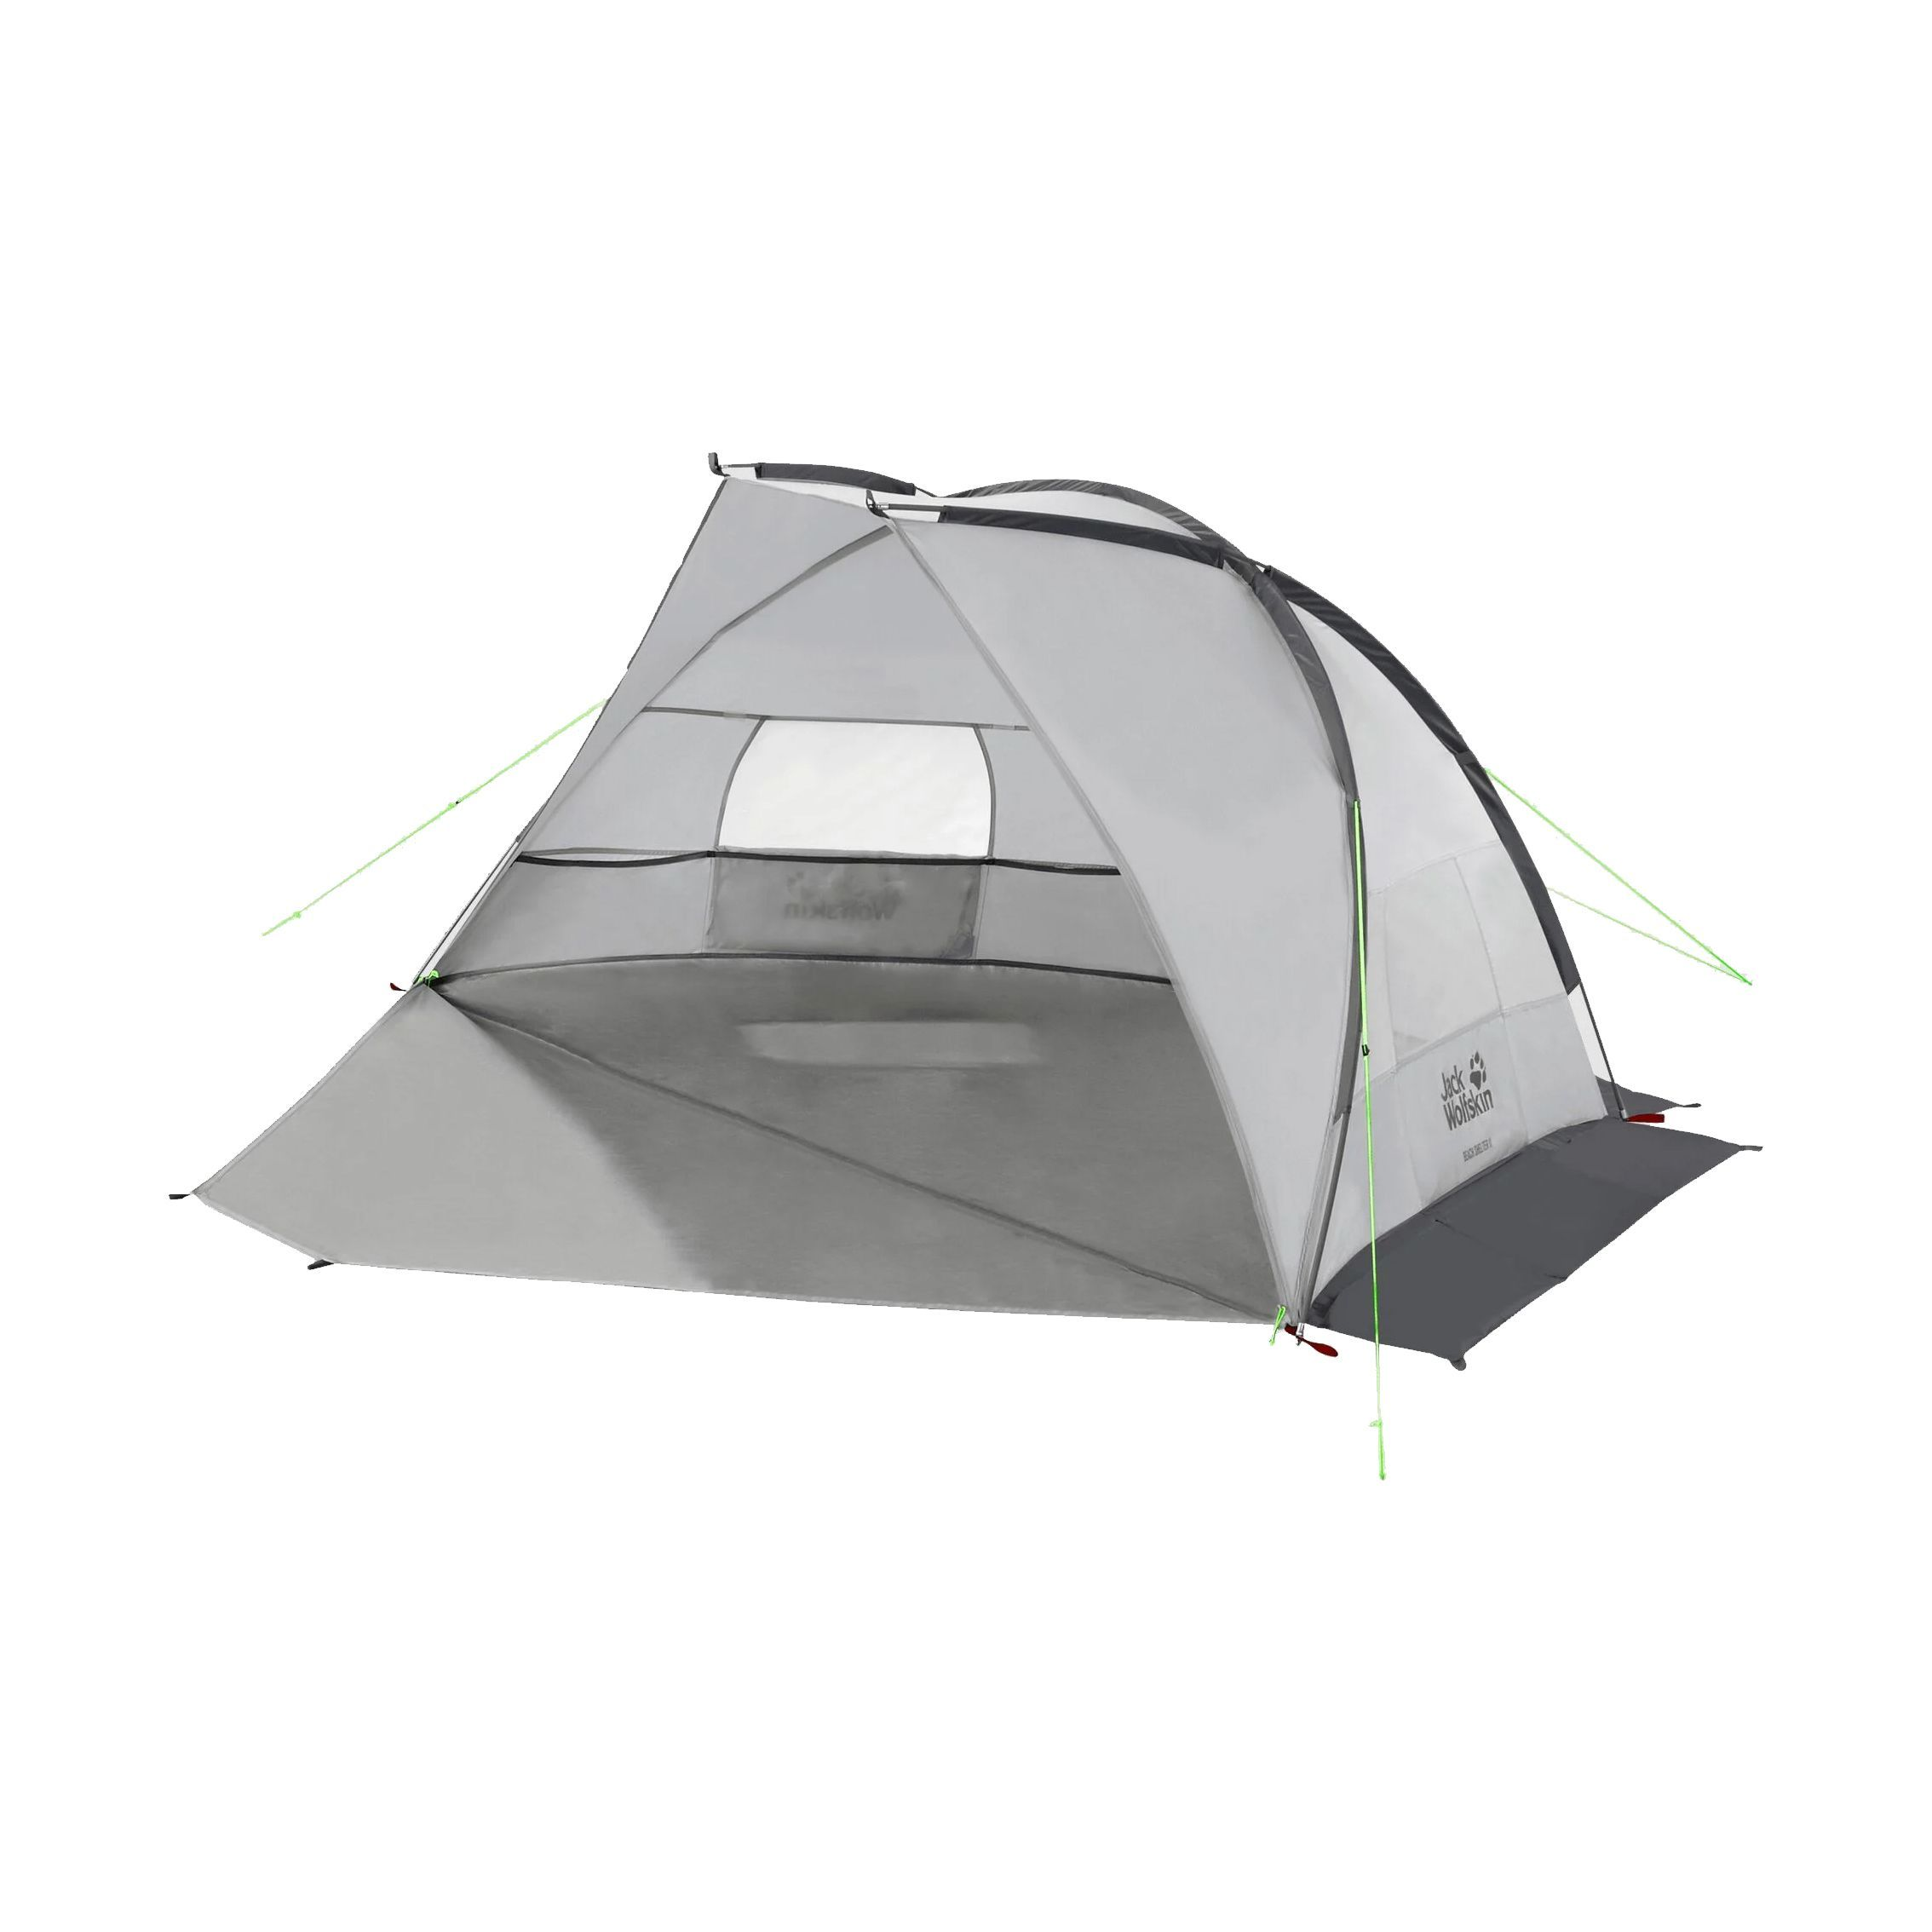 Best Pop Up Tents for the UK in 2020